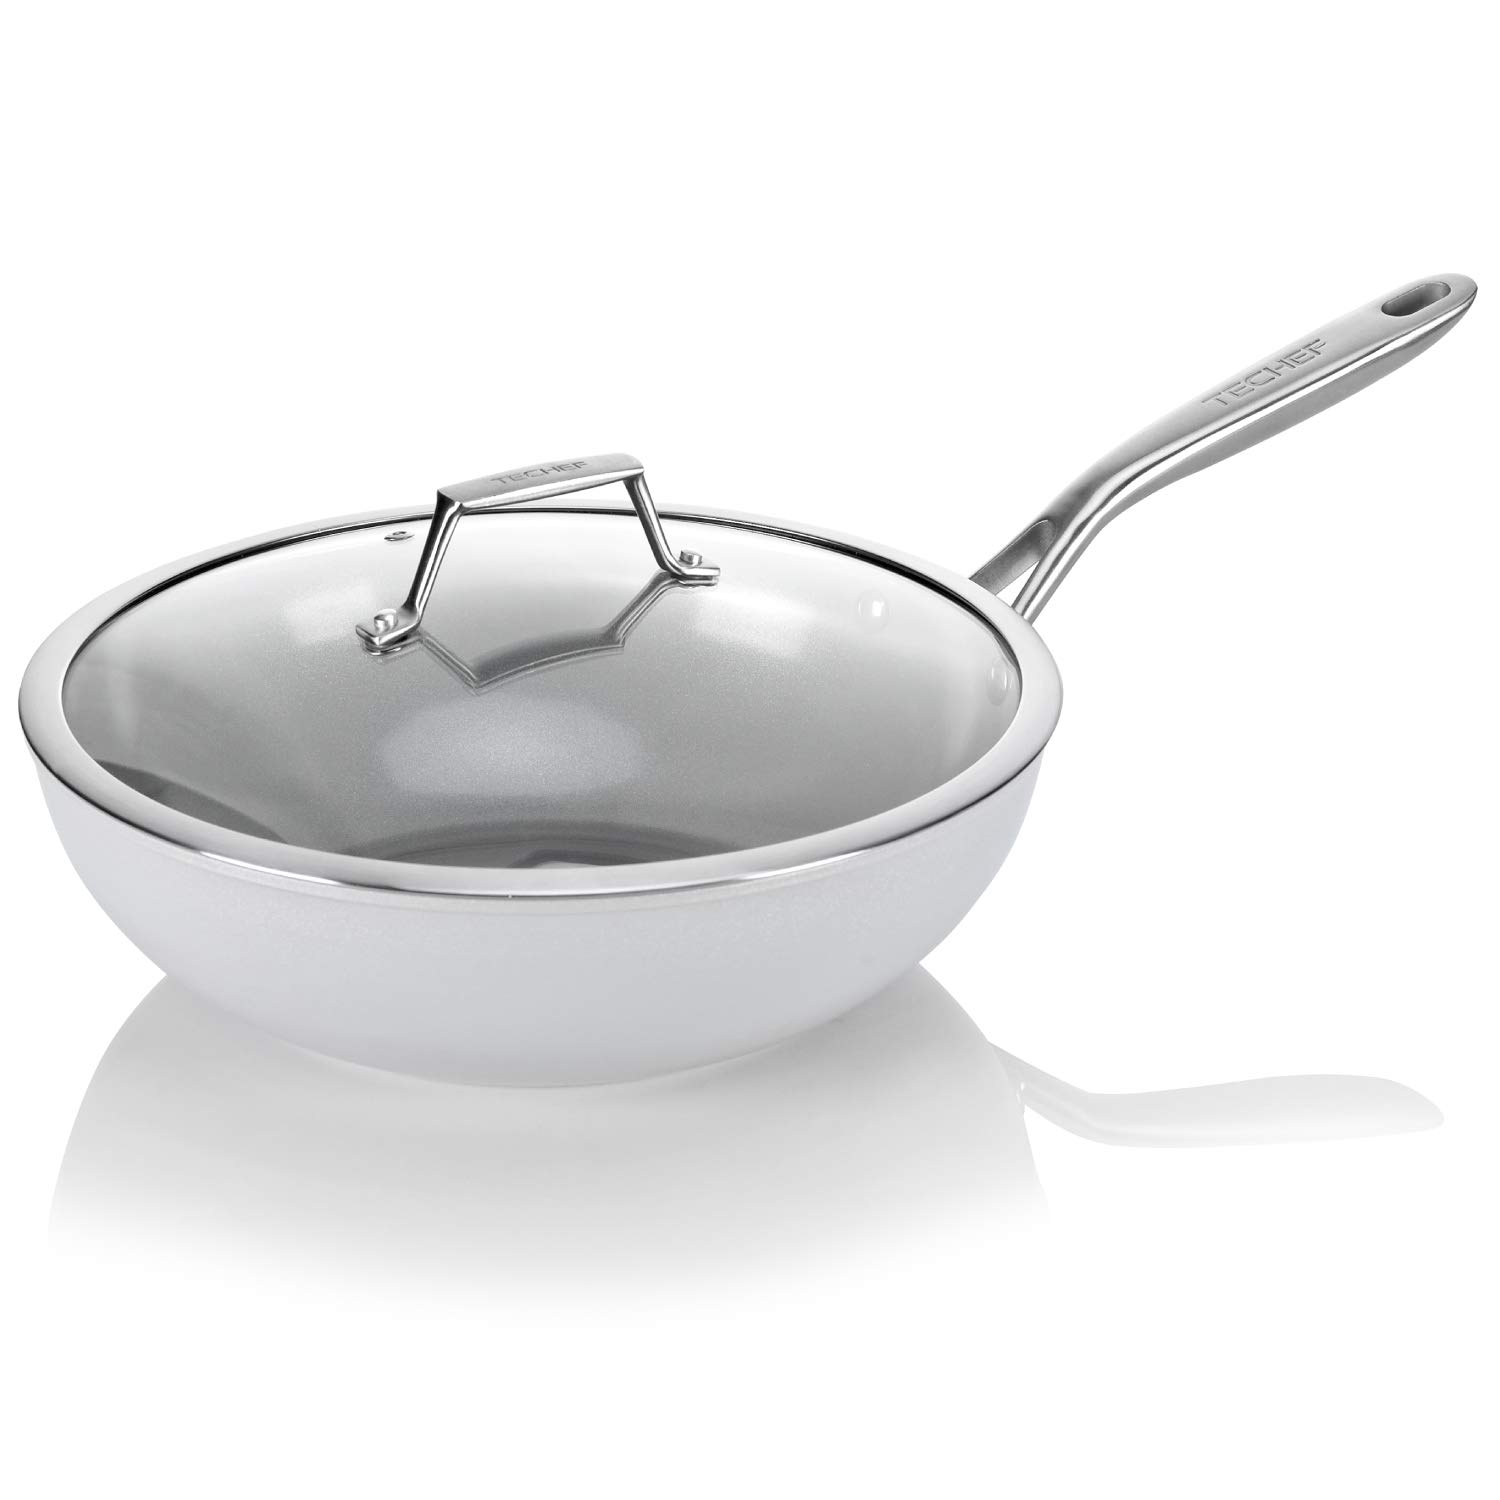 TECHEF – CeraTerra 12 Ceramic Nonstick Wok Stir-Fry Pan, PTFE and PFOA Free Ceramic Exterior Interior , Oven Dishwasher Safe, Made in Korea, Grey Silver 12-in with lid